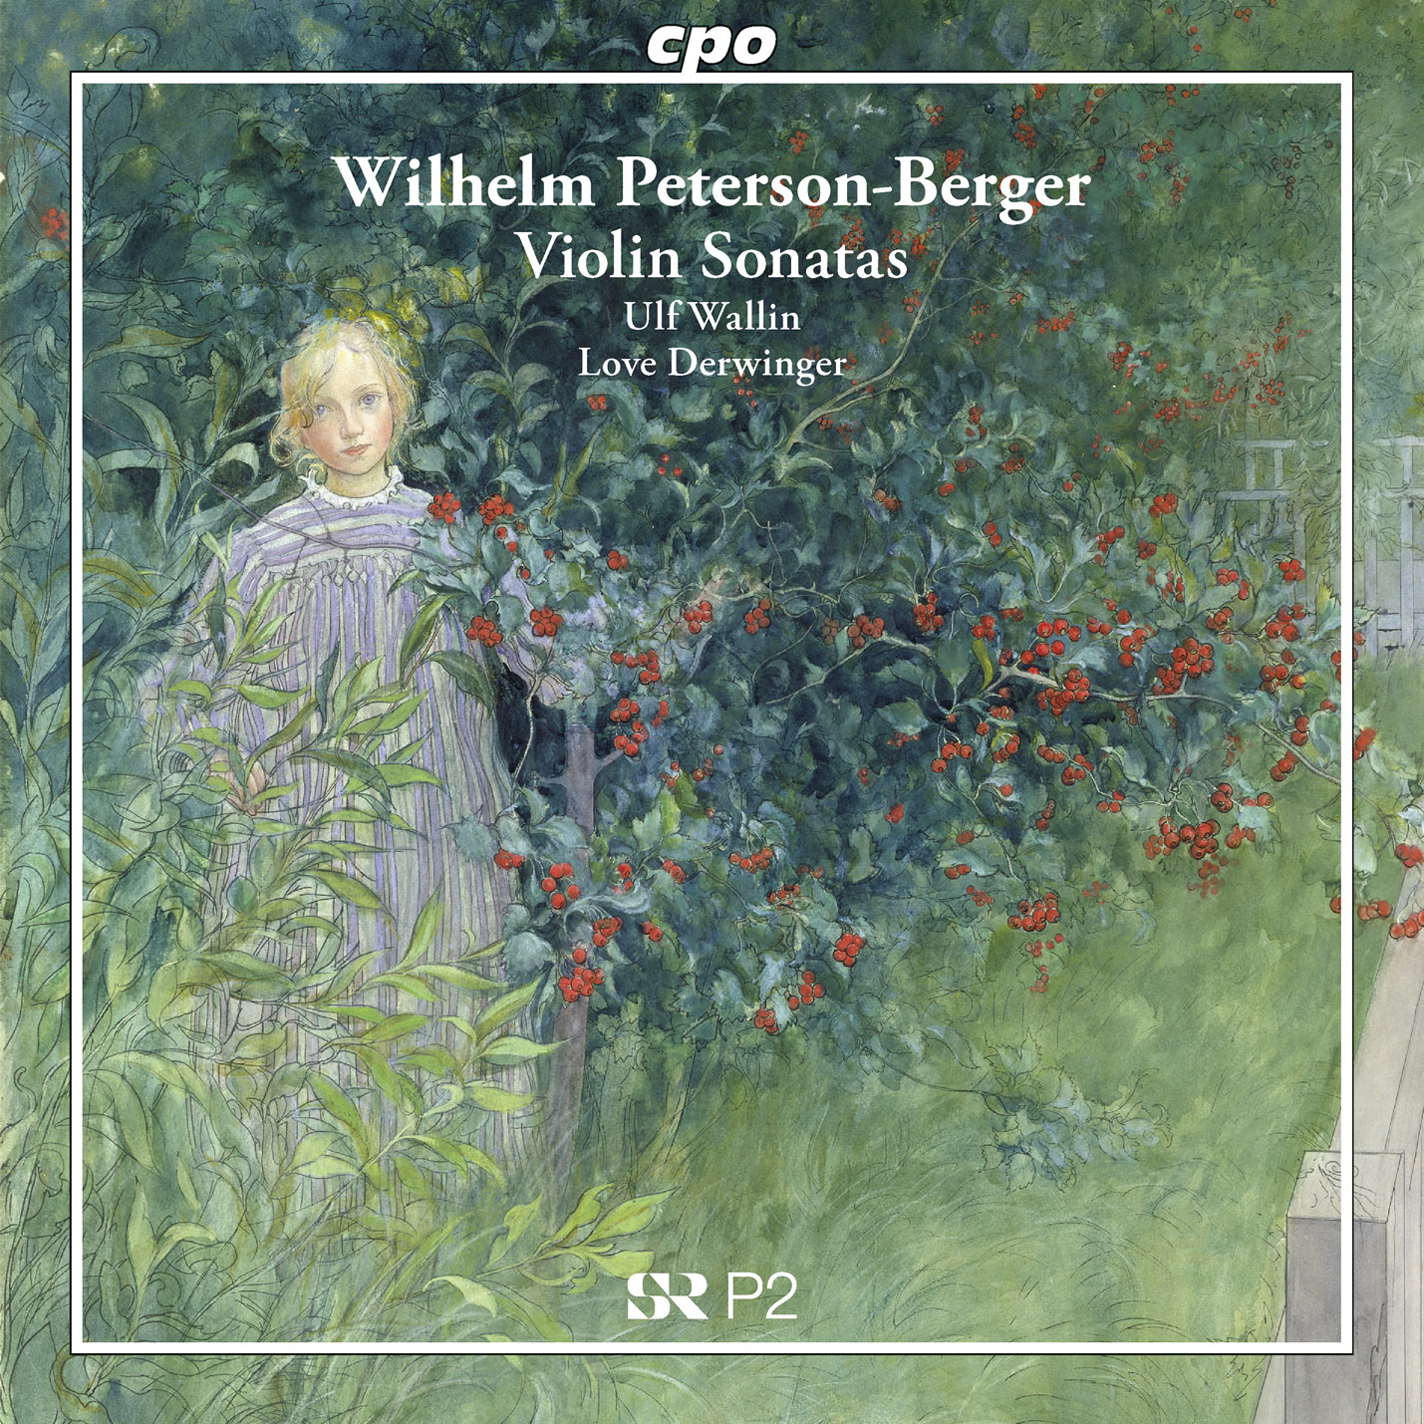 Violin Sonata No. 1 in E Minor, Op. 1, Violin Sonata No. 1 in E Minor, Op. 1: III. Scherzando, moto moderato